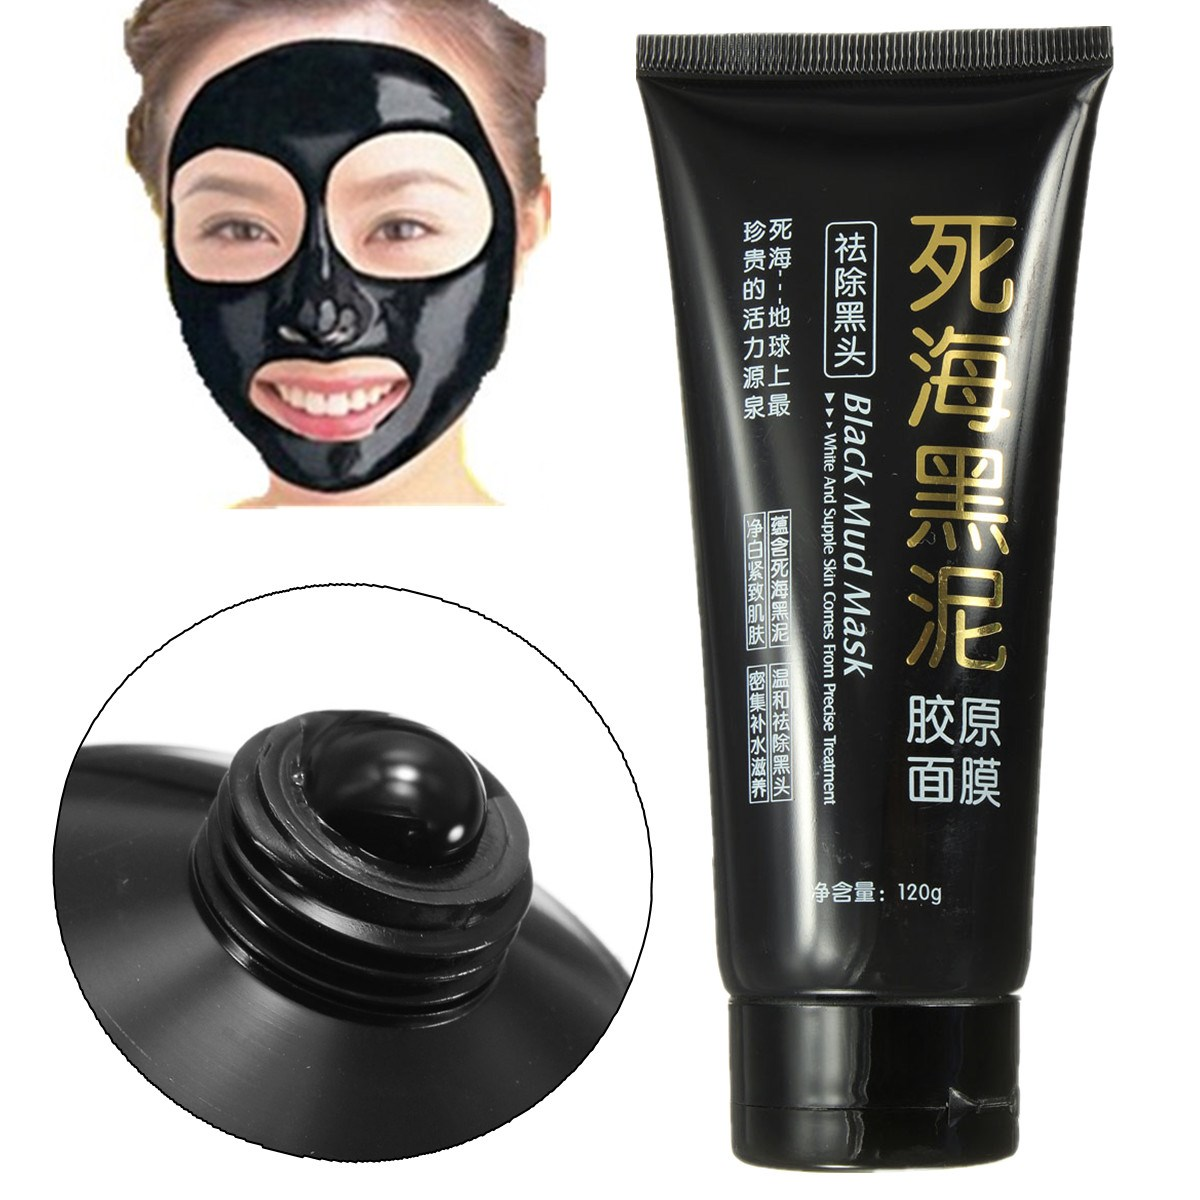 1pcs Dead Sea Black Mud Mask Collagen Blackhead Peel Off Tear Pull Masks Deep Cleaning Pores Acne Face Care Tools(China (Mainland))